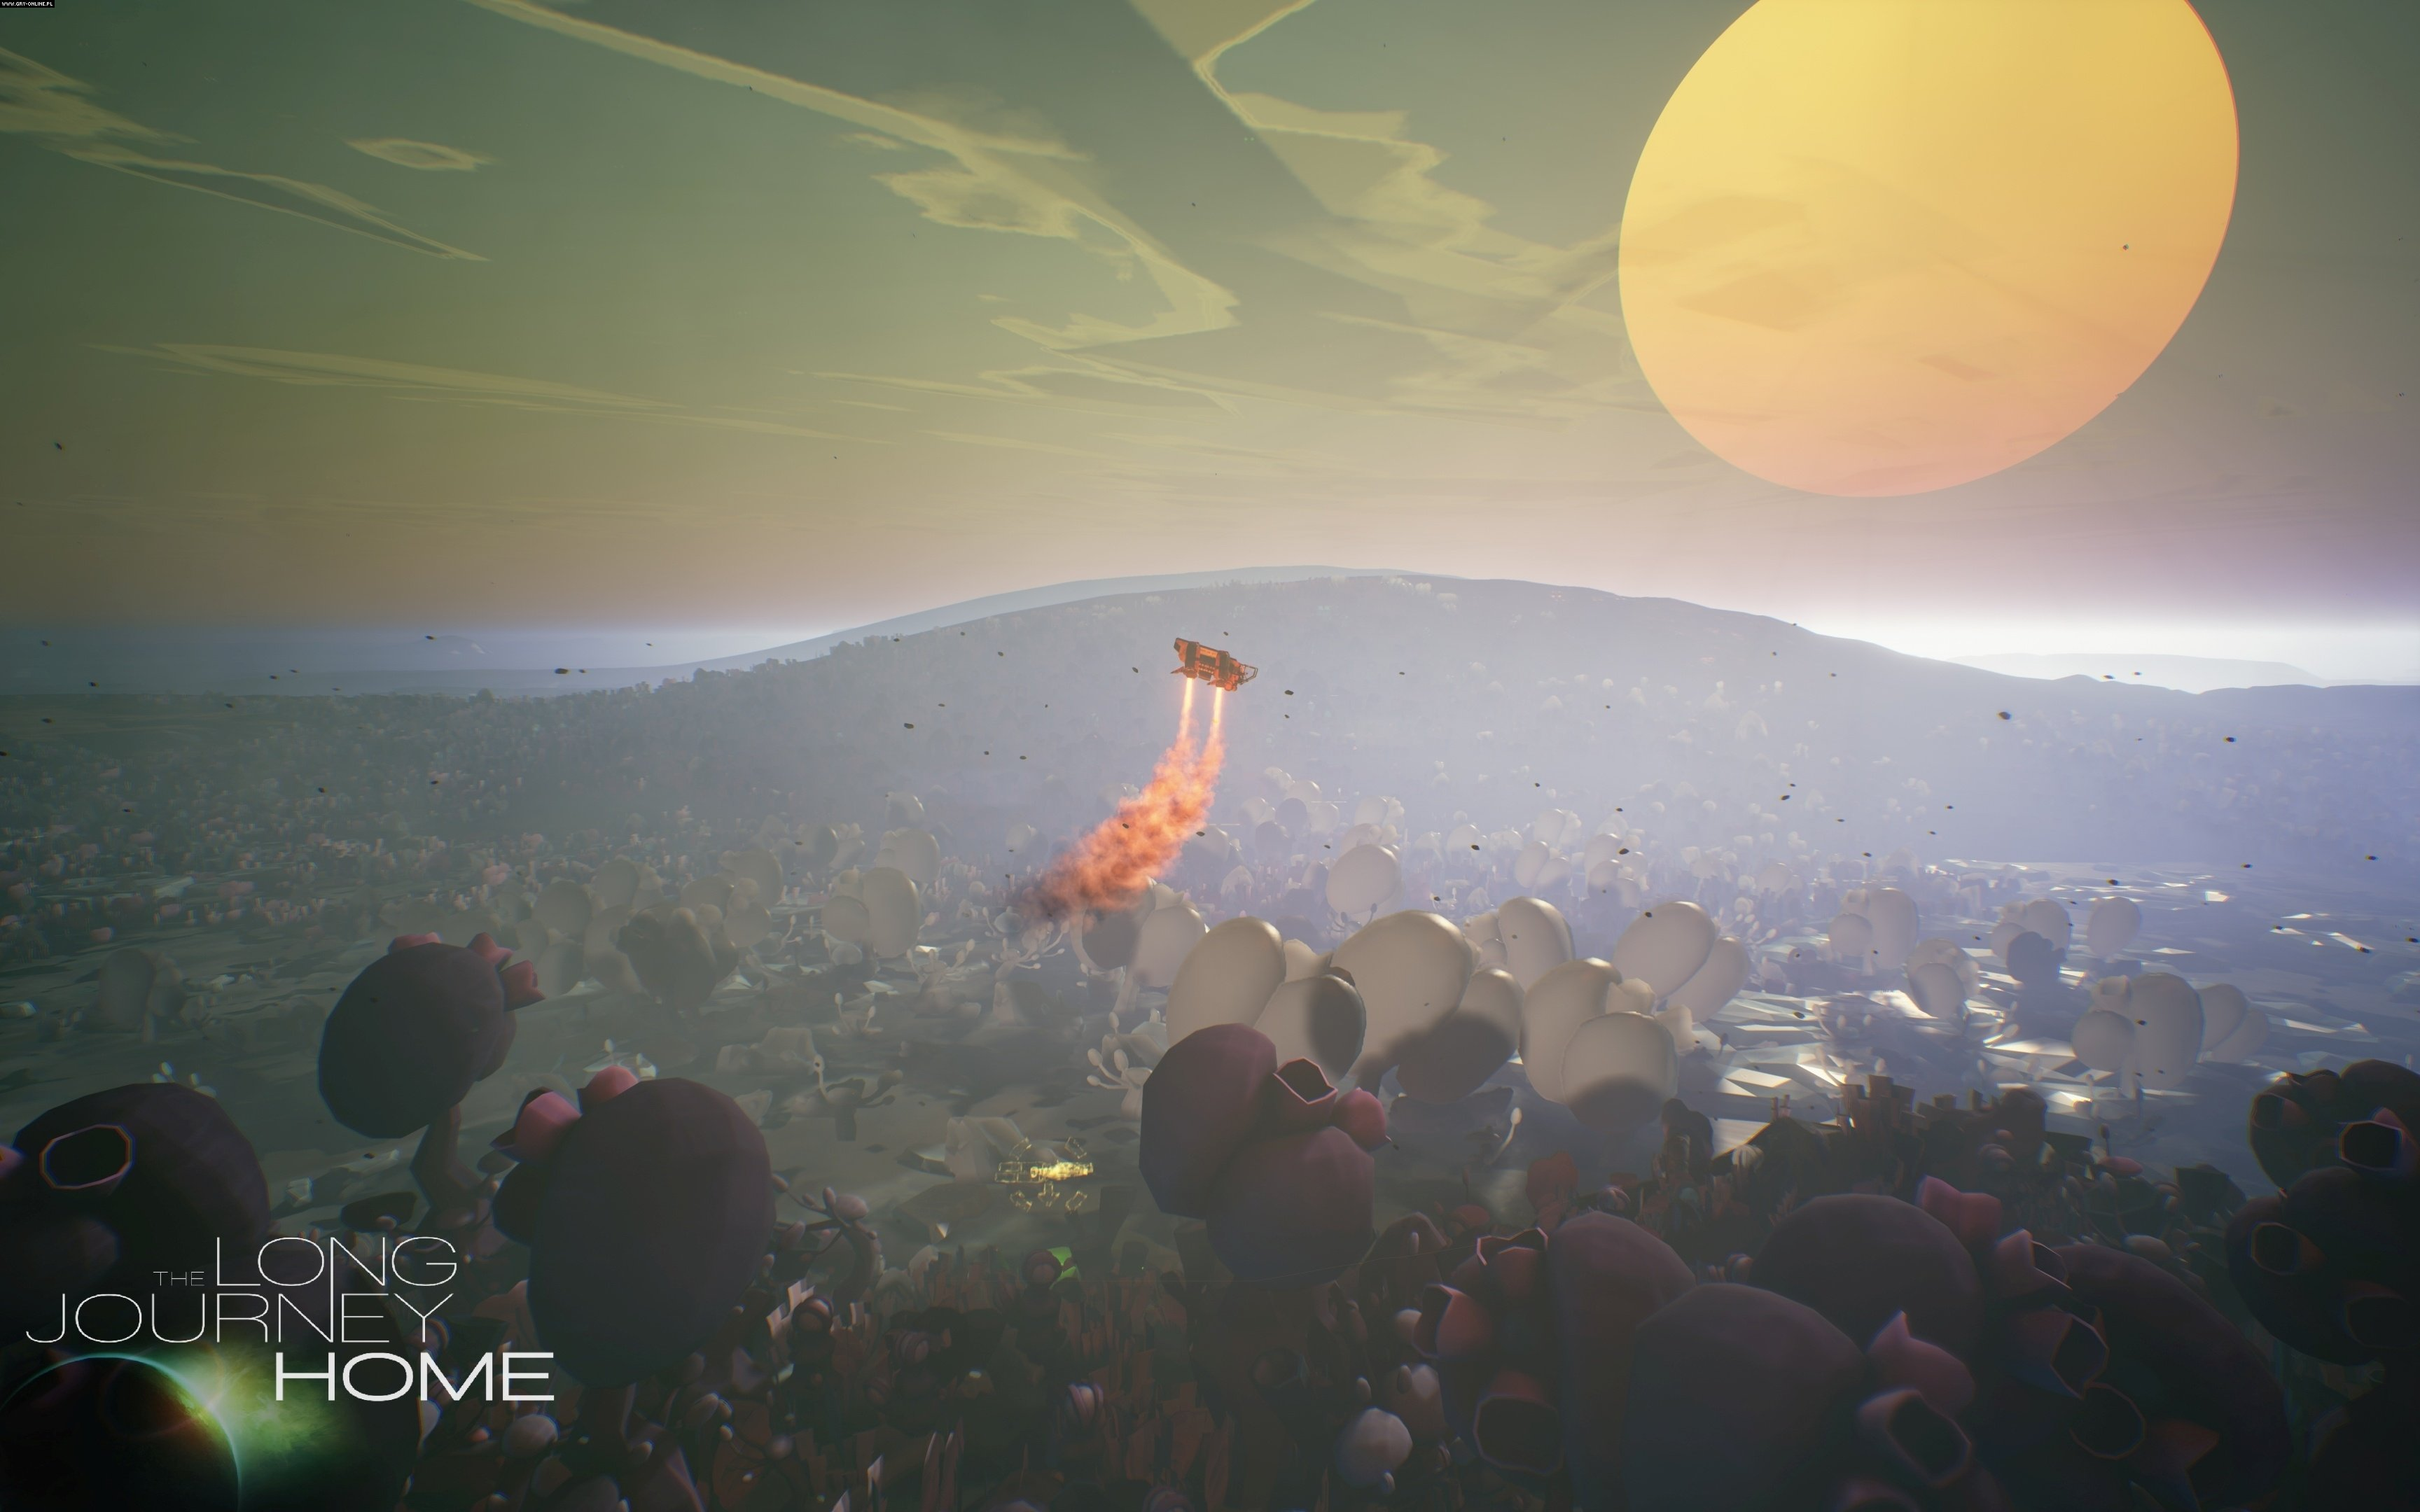 The Long Journey Home PC, PS4 Gry Screen 6/20, Daedalic West, Daedalic Entertainment